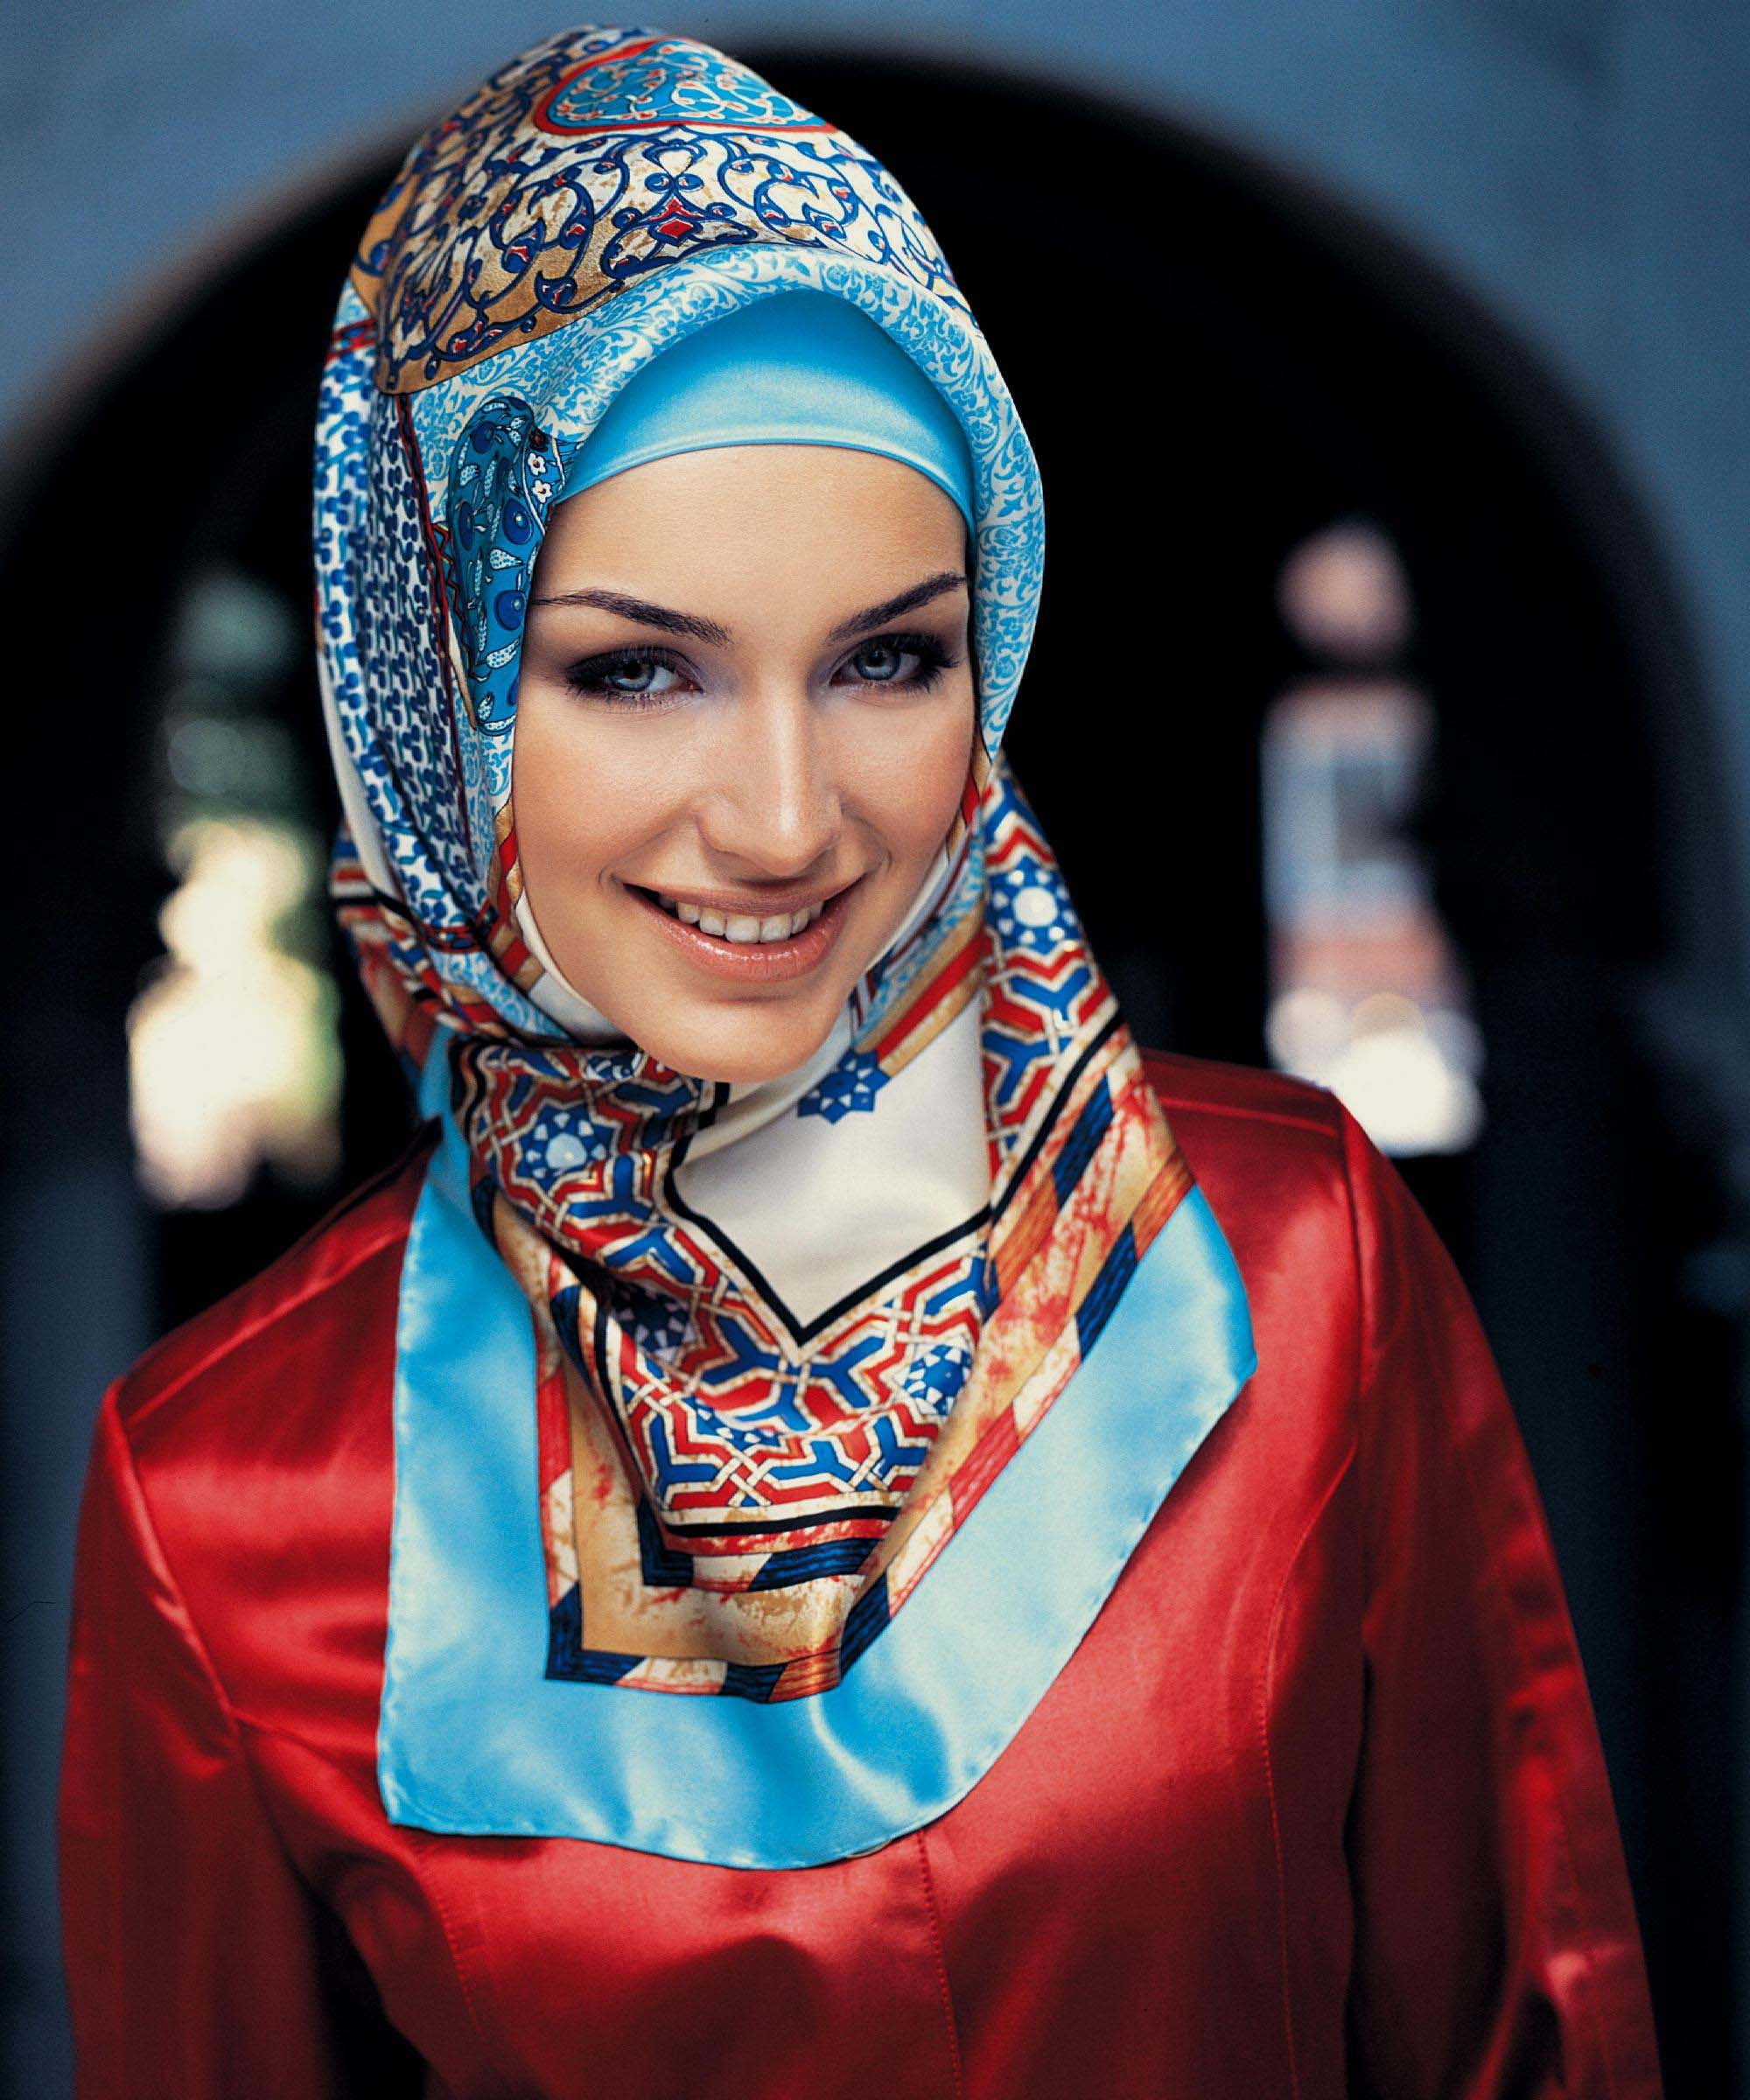 bossier city muslim women dating site Bossier city singles on webdatecom, the worlds best free dating and personals site find singles in la for flirty fun, and chat with single men and women online.